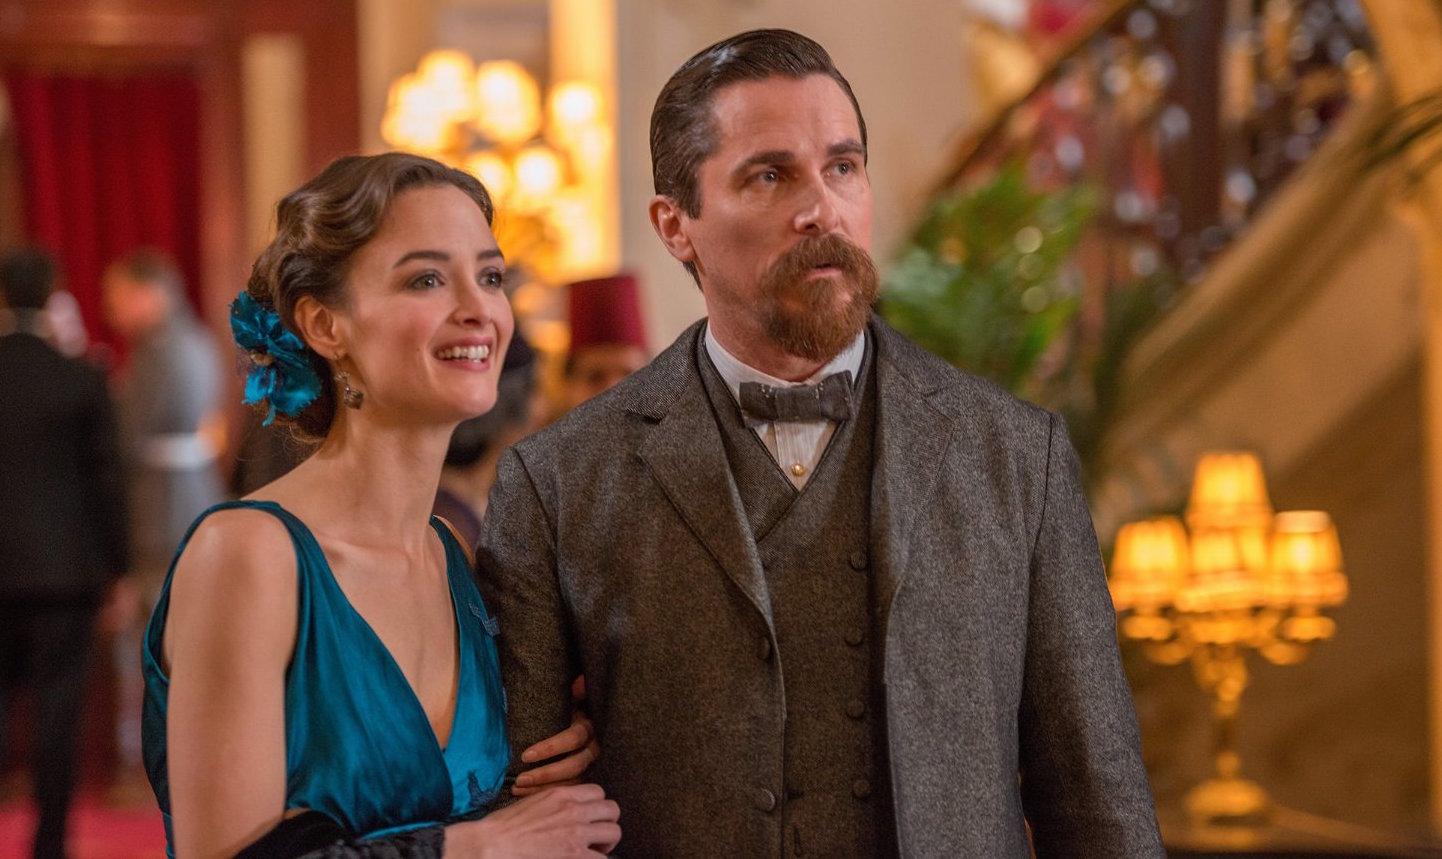 Christian Bale (right) and Charlotte Le Bon star in